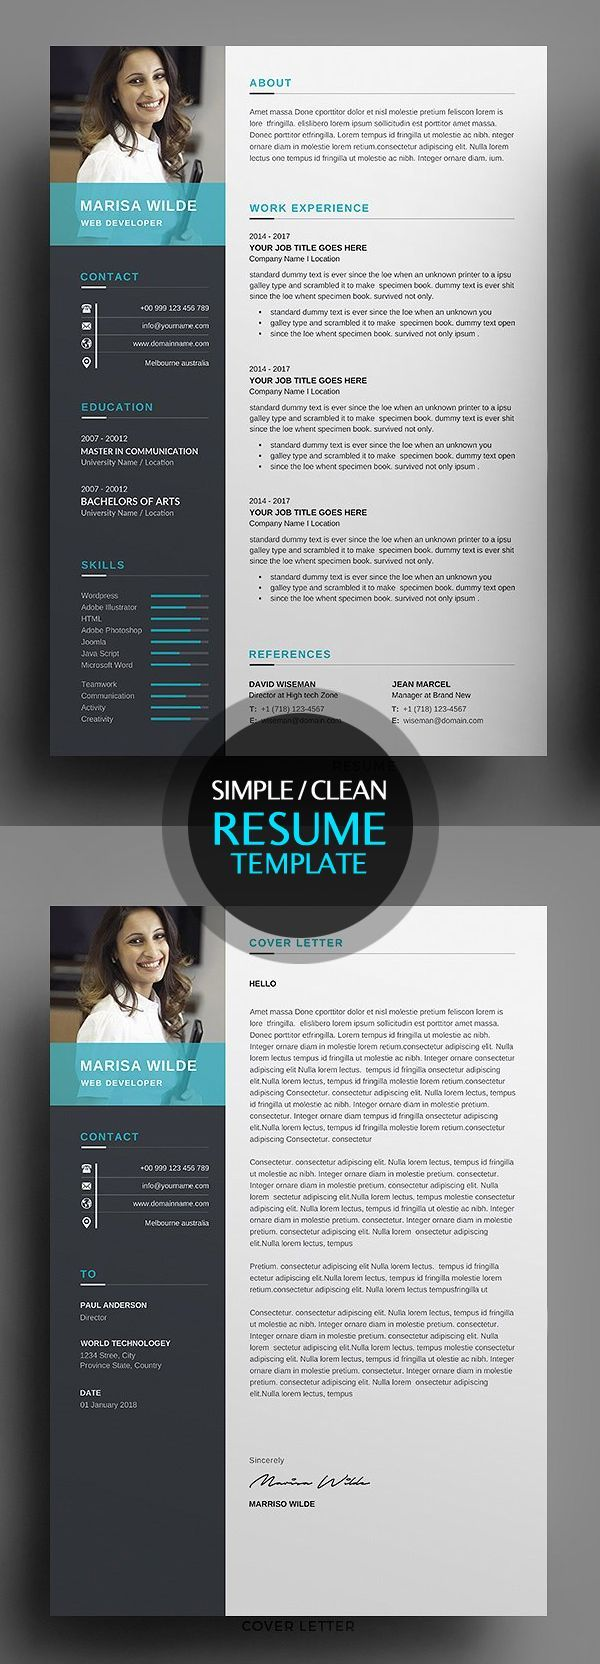 Clean Resume/CV Template 2018 – #career #Clean #Re…